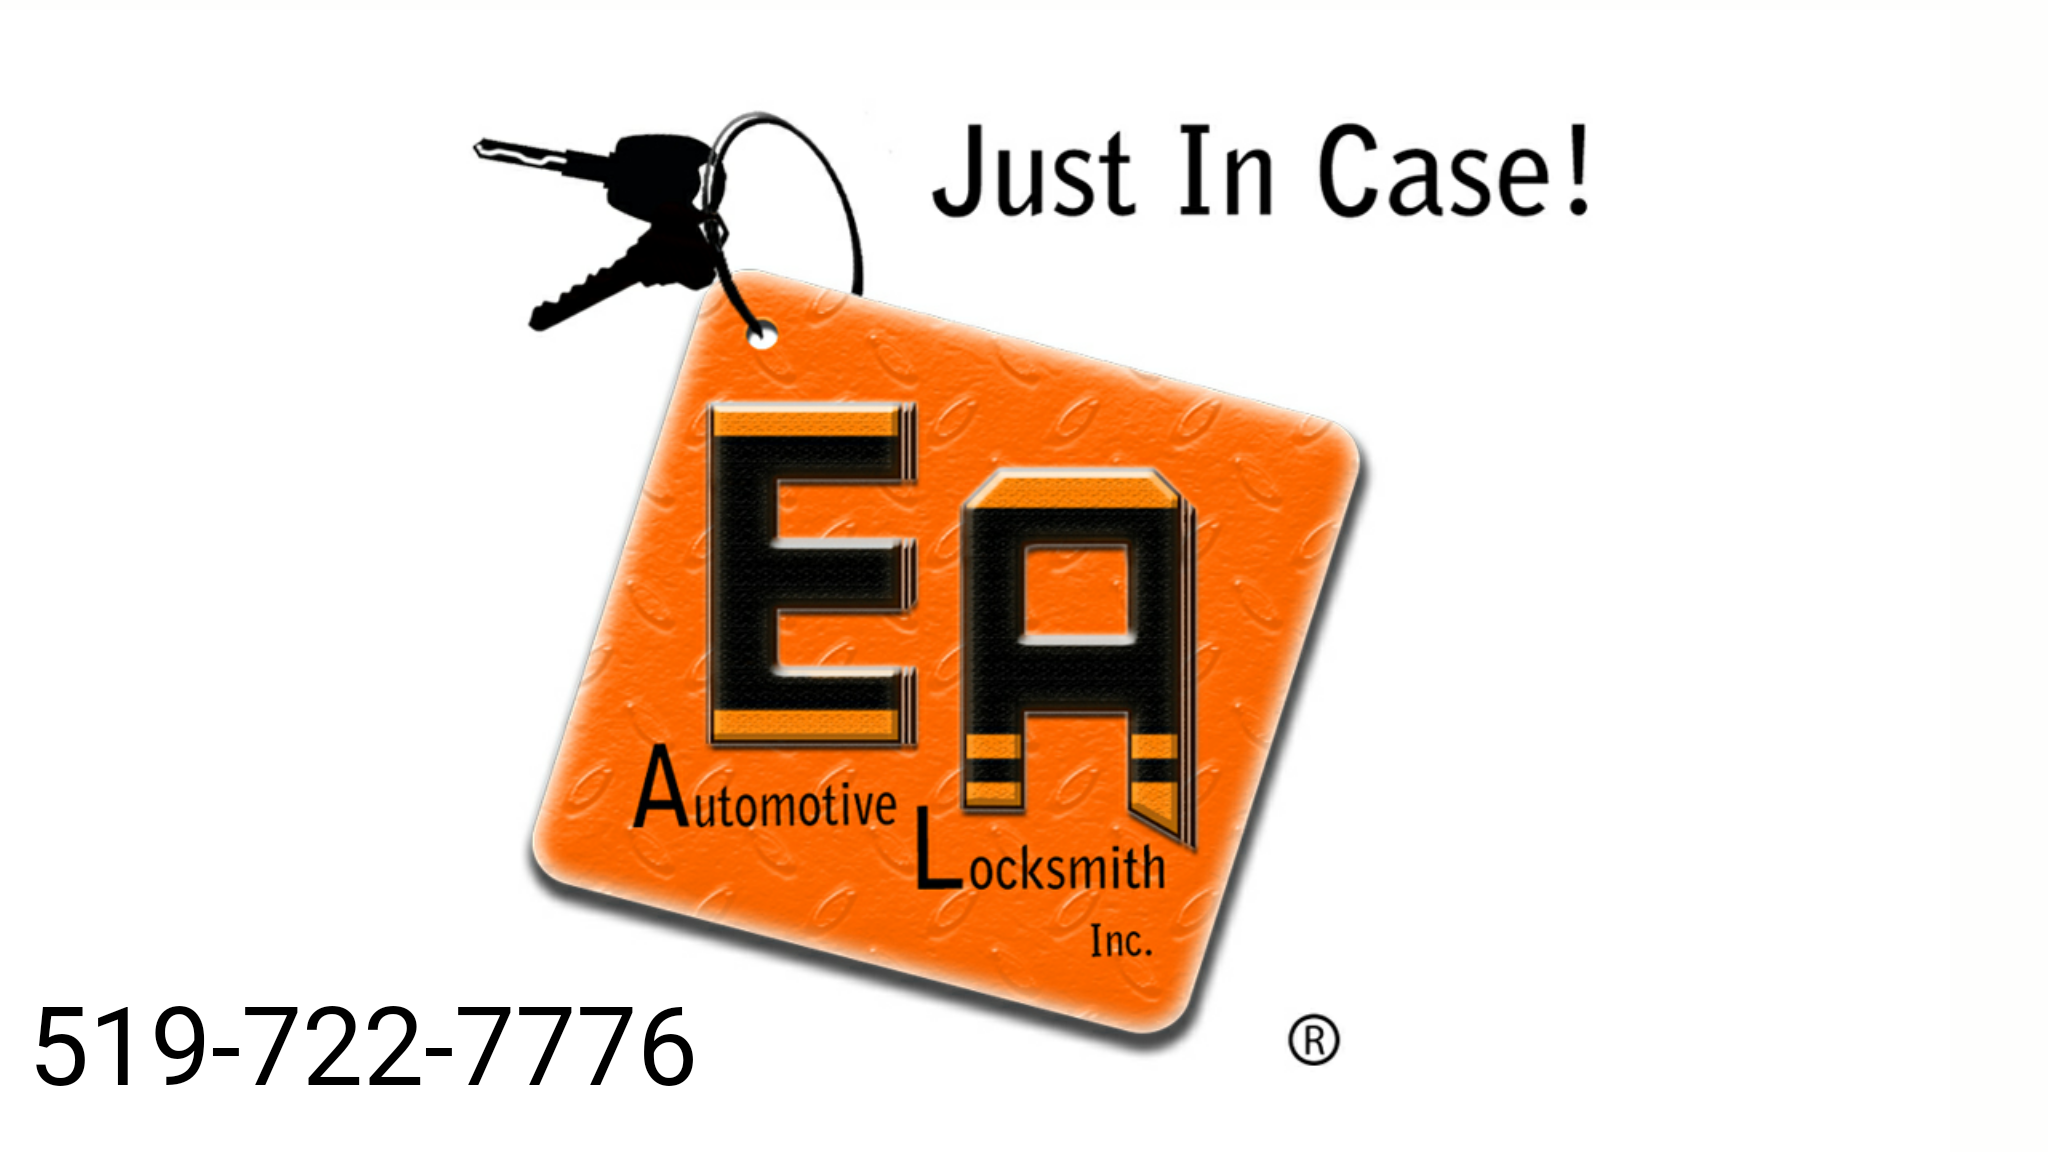 Locksmith's Safe